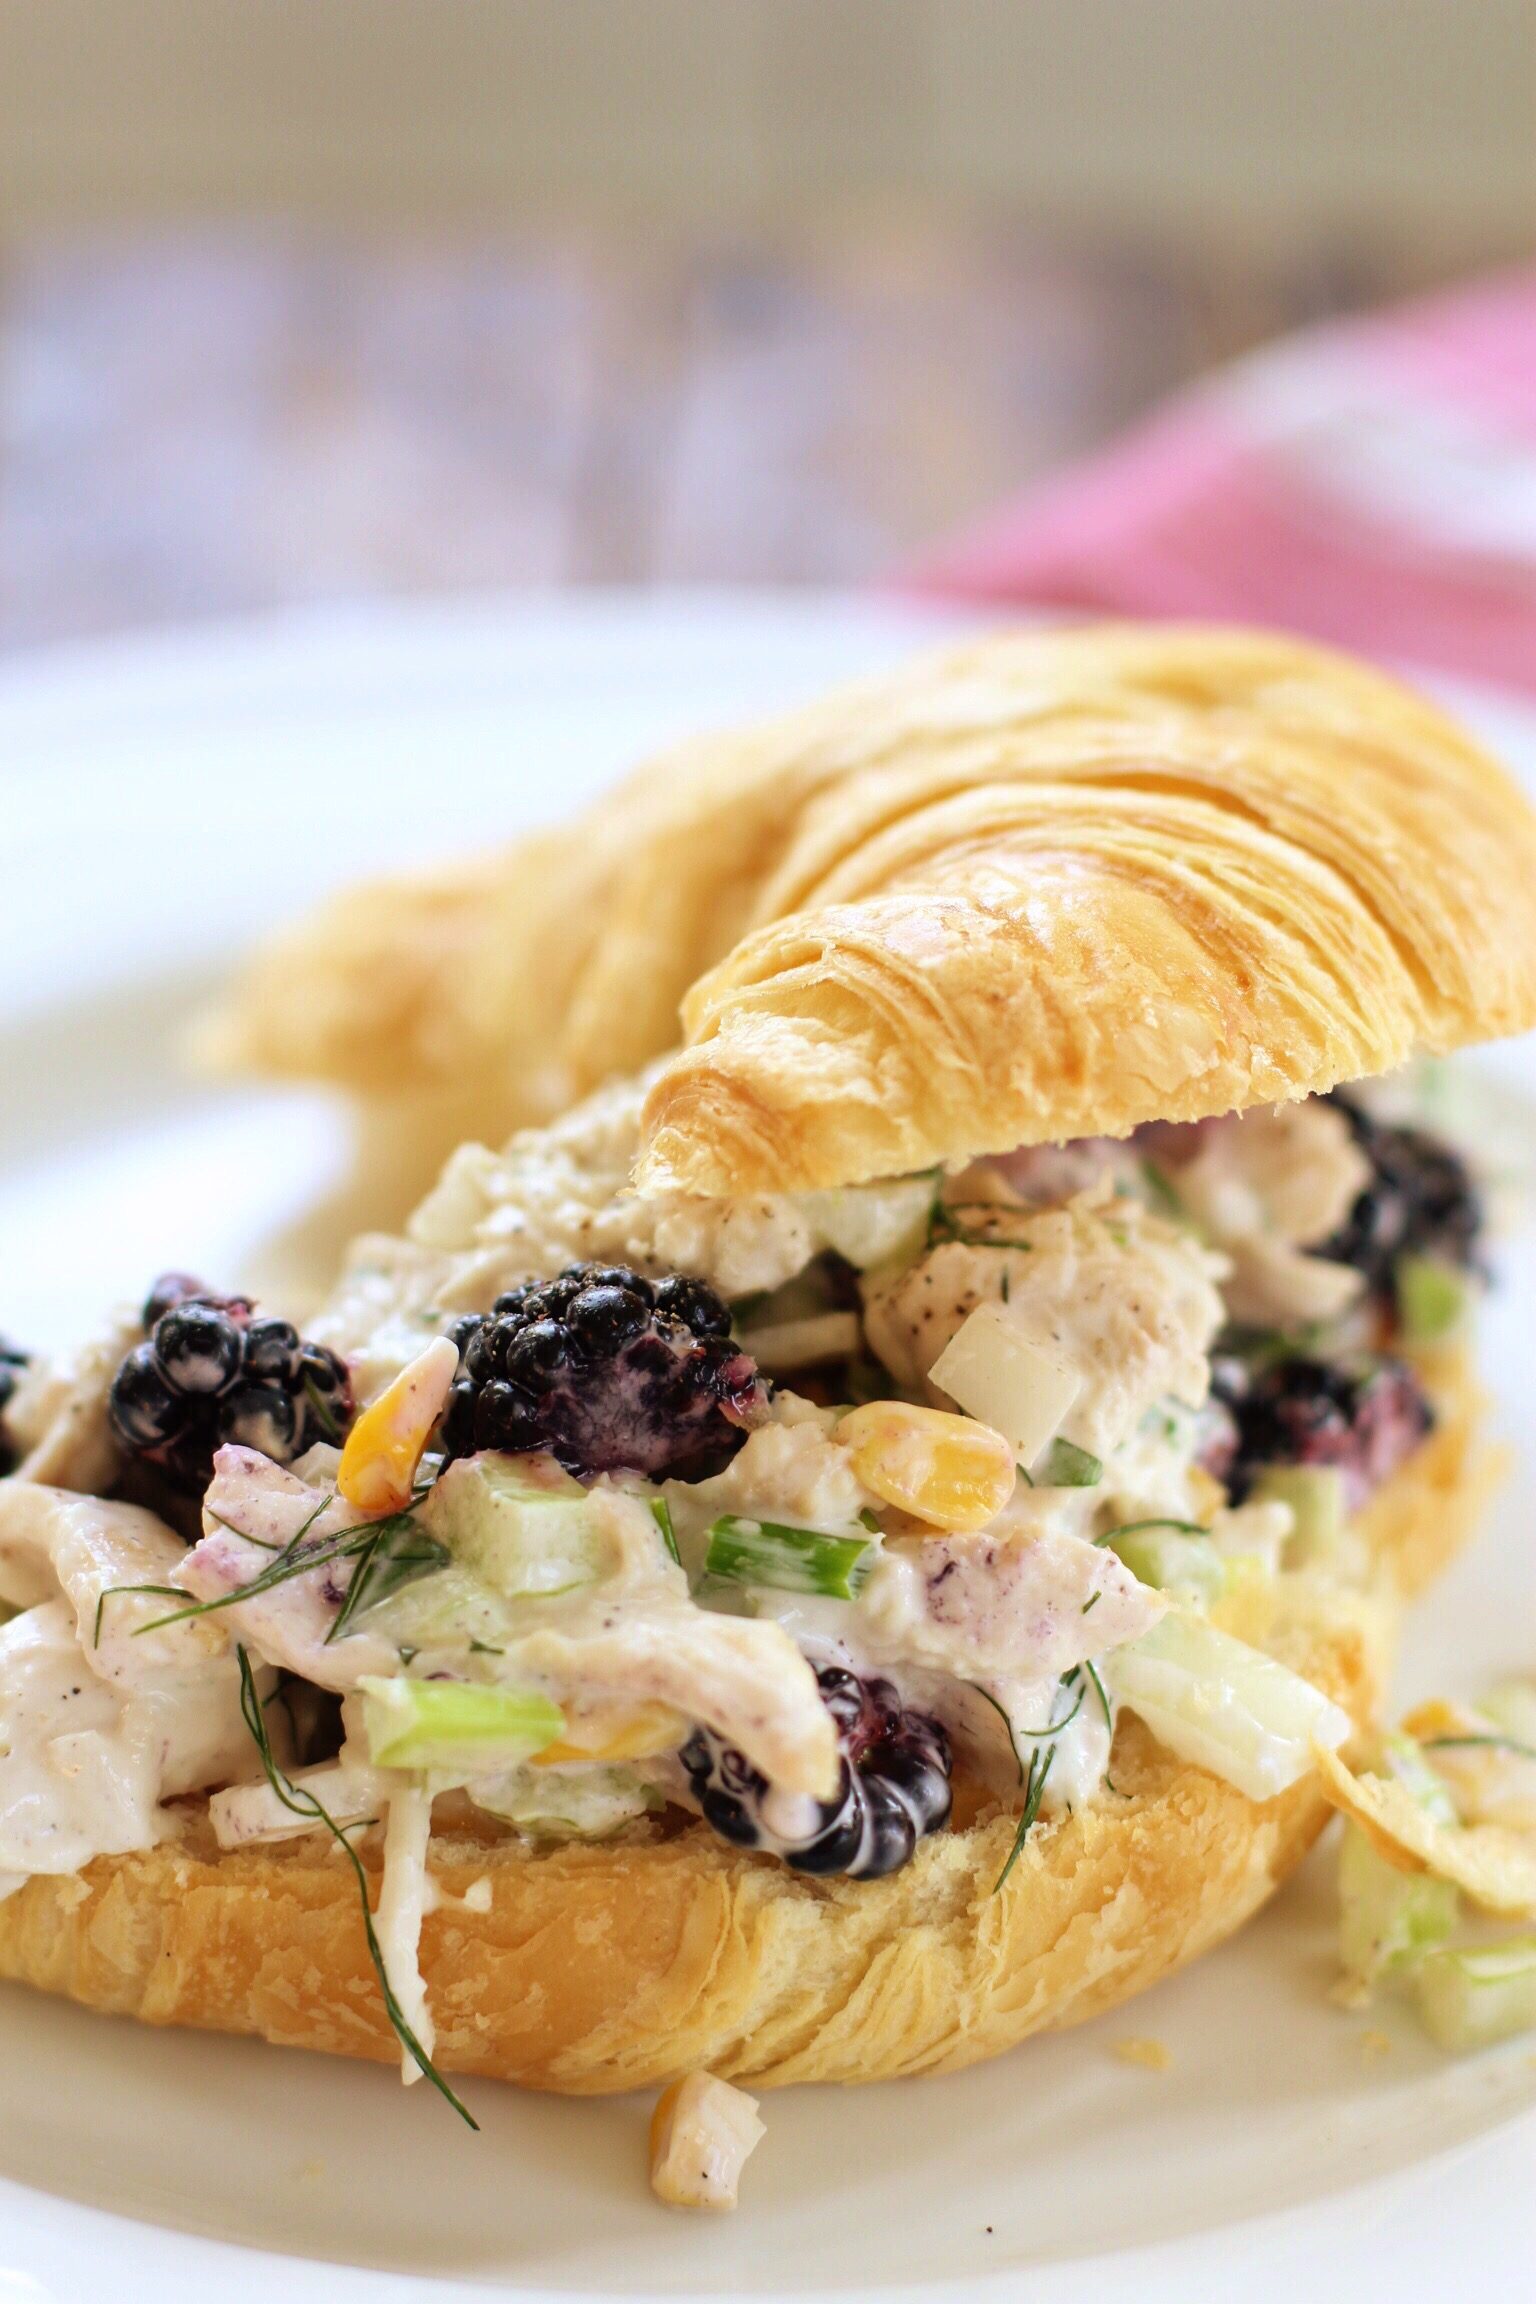 Chicken salad with blackberries and corn